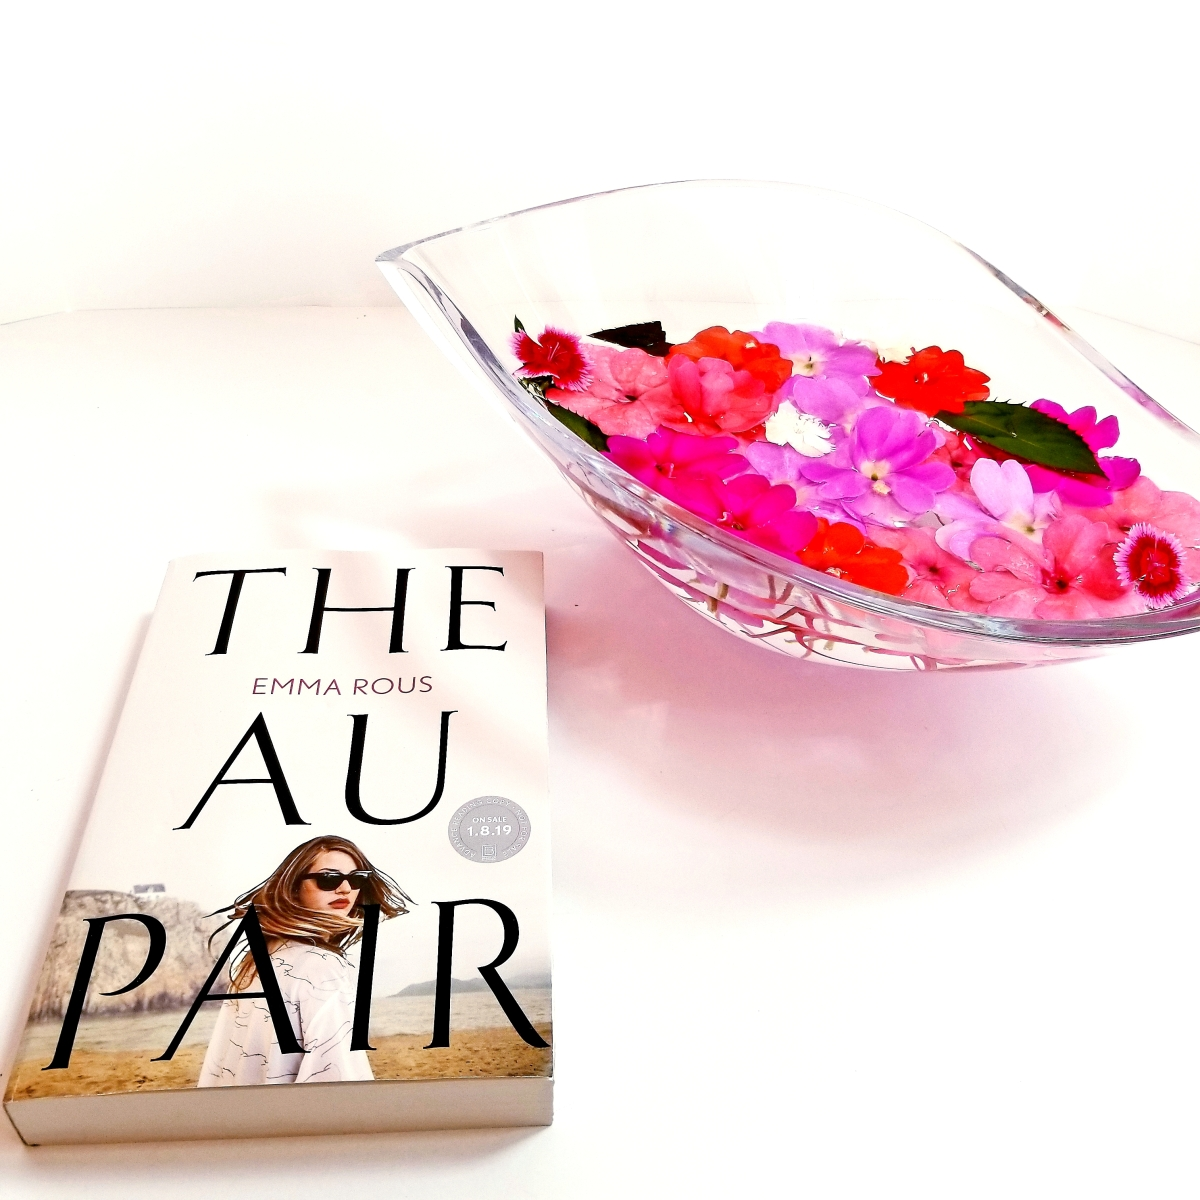 I can't wait for ... (Can't-Wait Wednesday/Waiting on Wednesday) #cantwaitwednesday #tarheelreader #thraupair @ejrous @berkleypub #theaupair #bookbestiesaupair